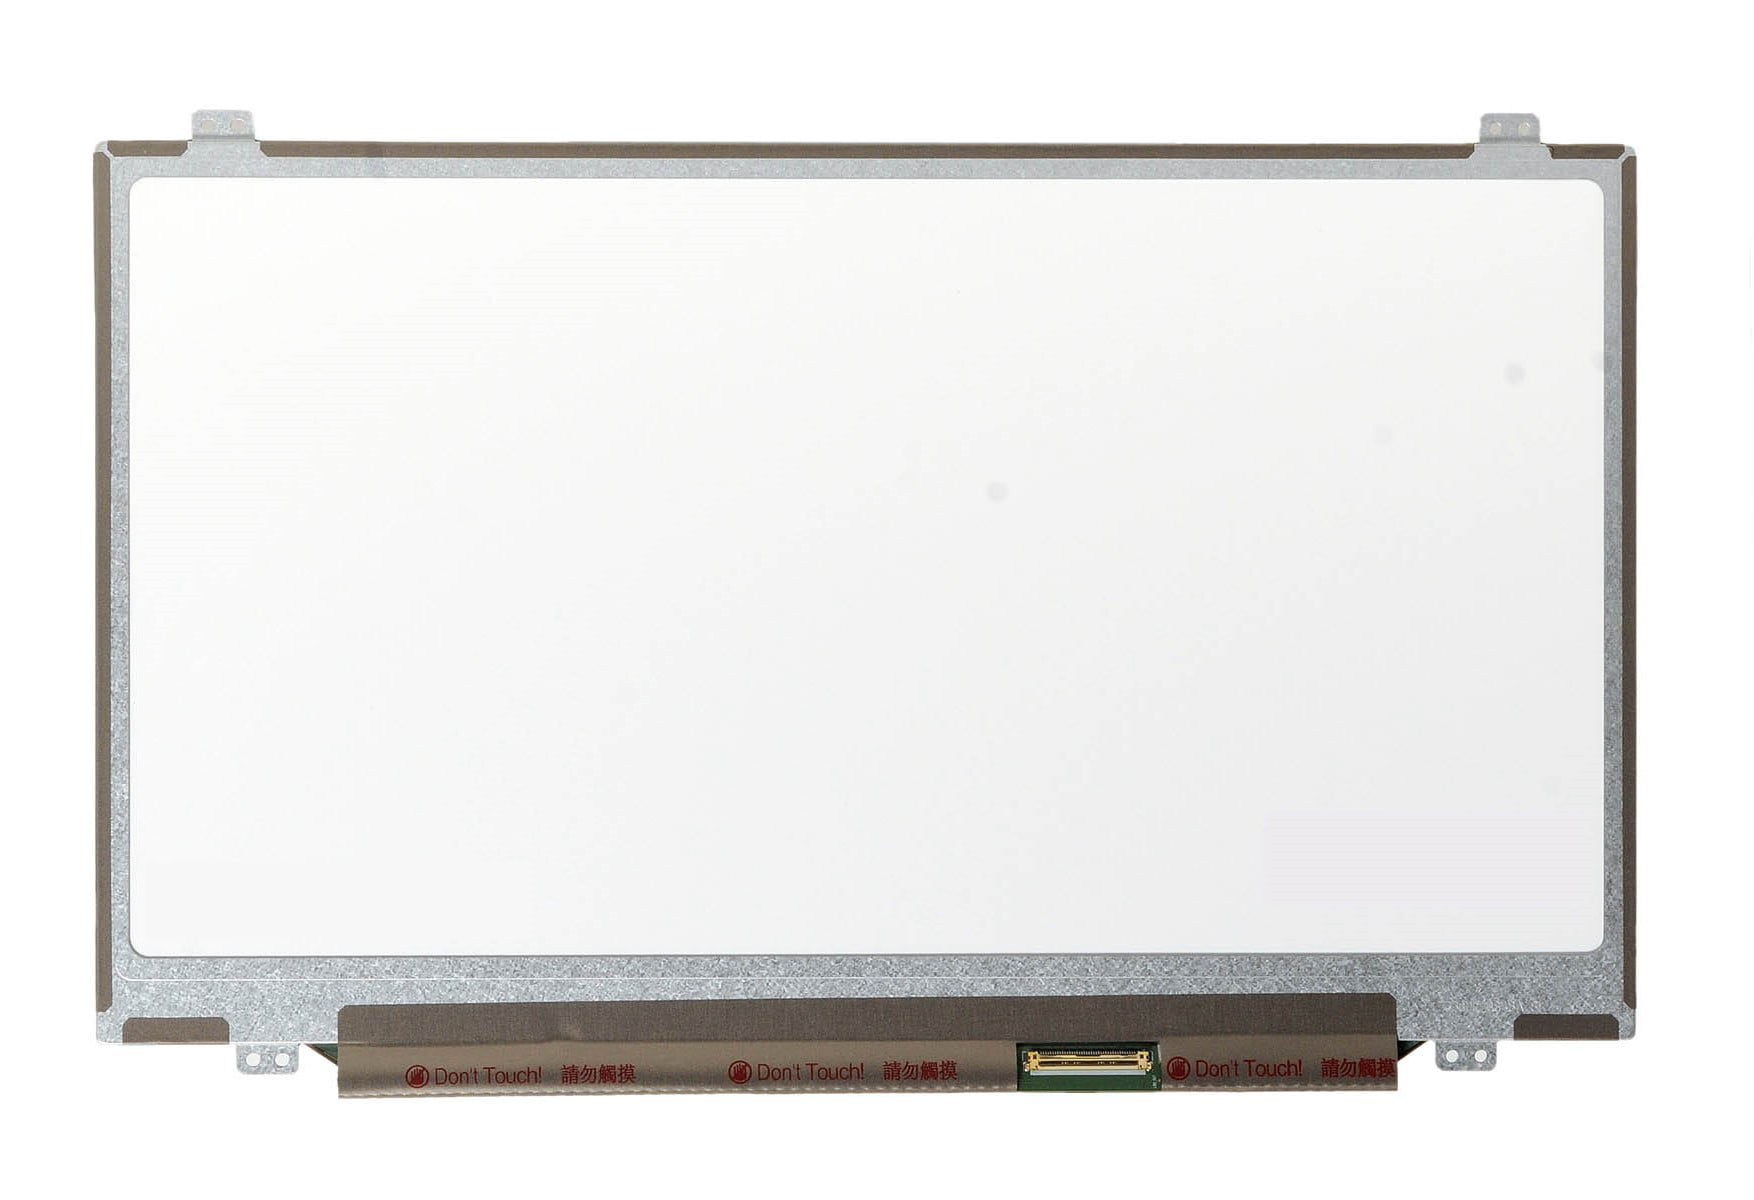 HP-Compaq ENVY TOUCHSMART ULTRABOOK 4-1100 SERIES 14.0